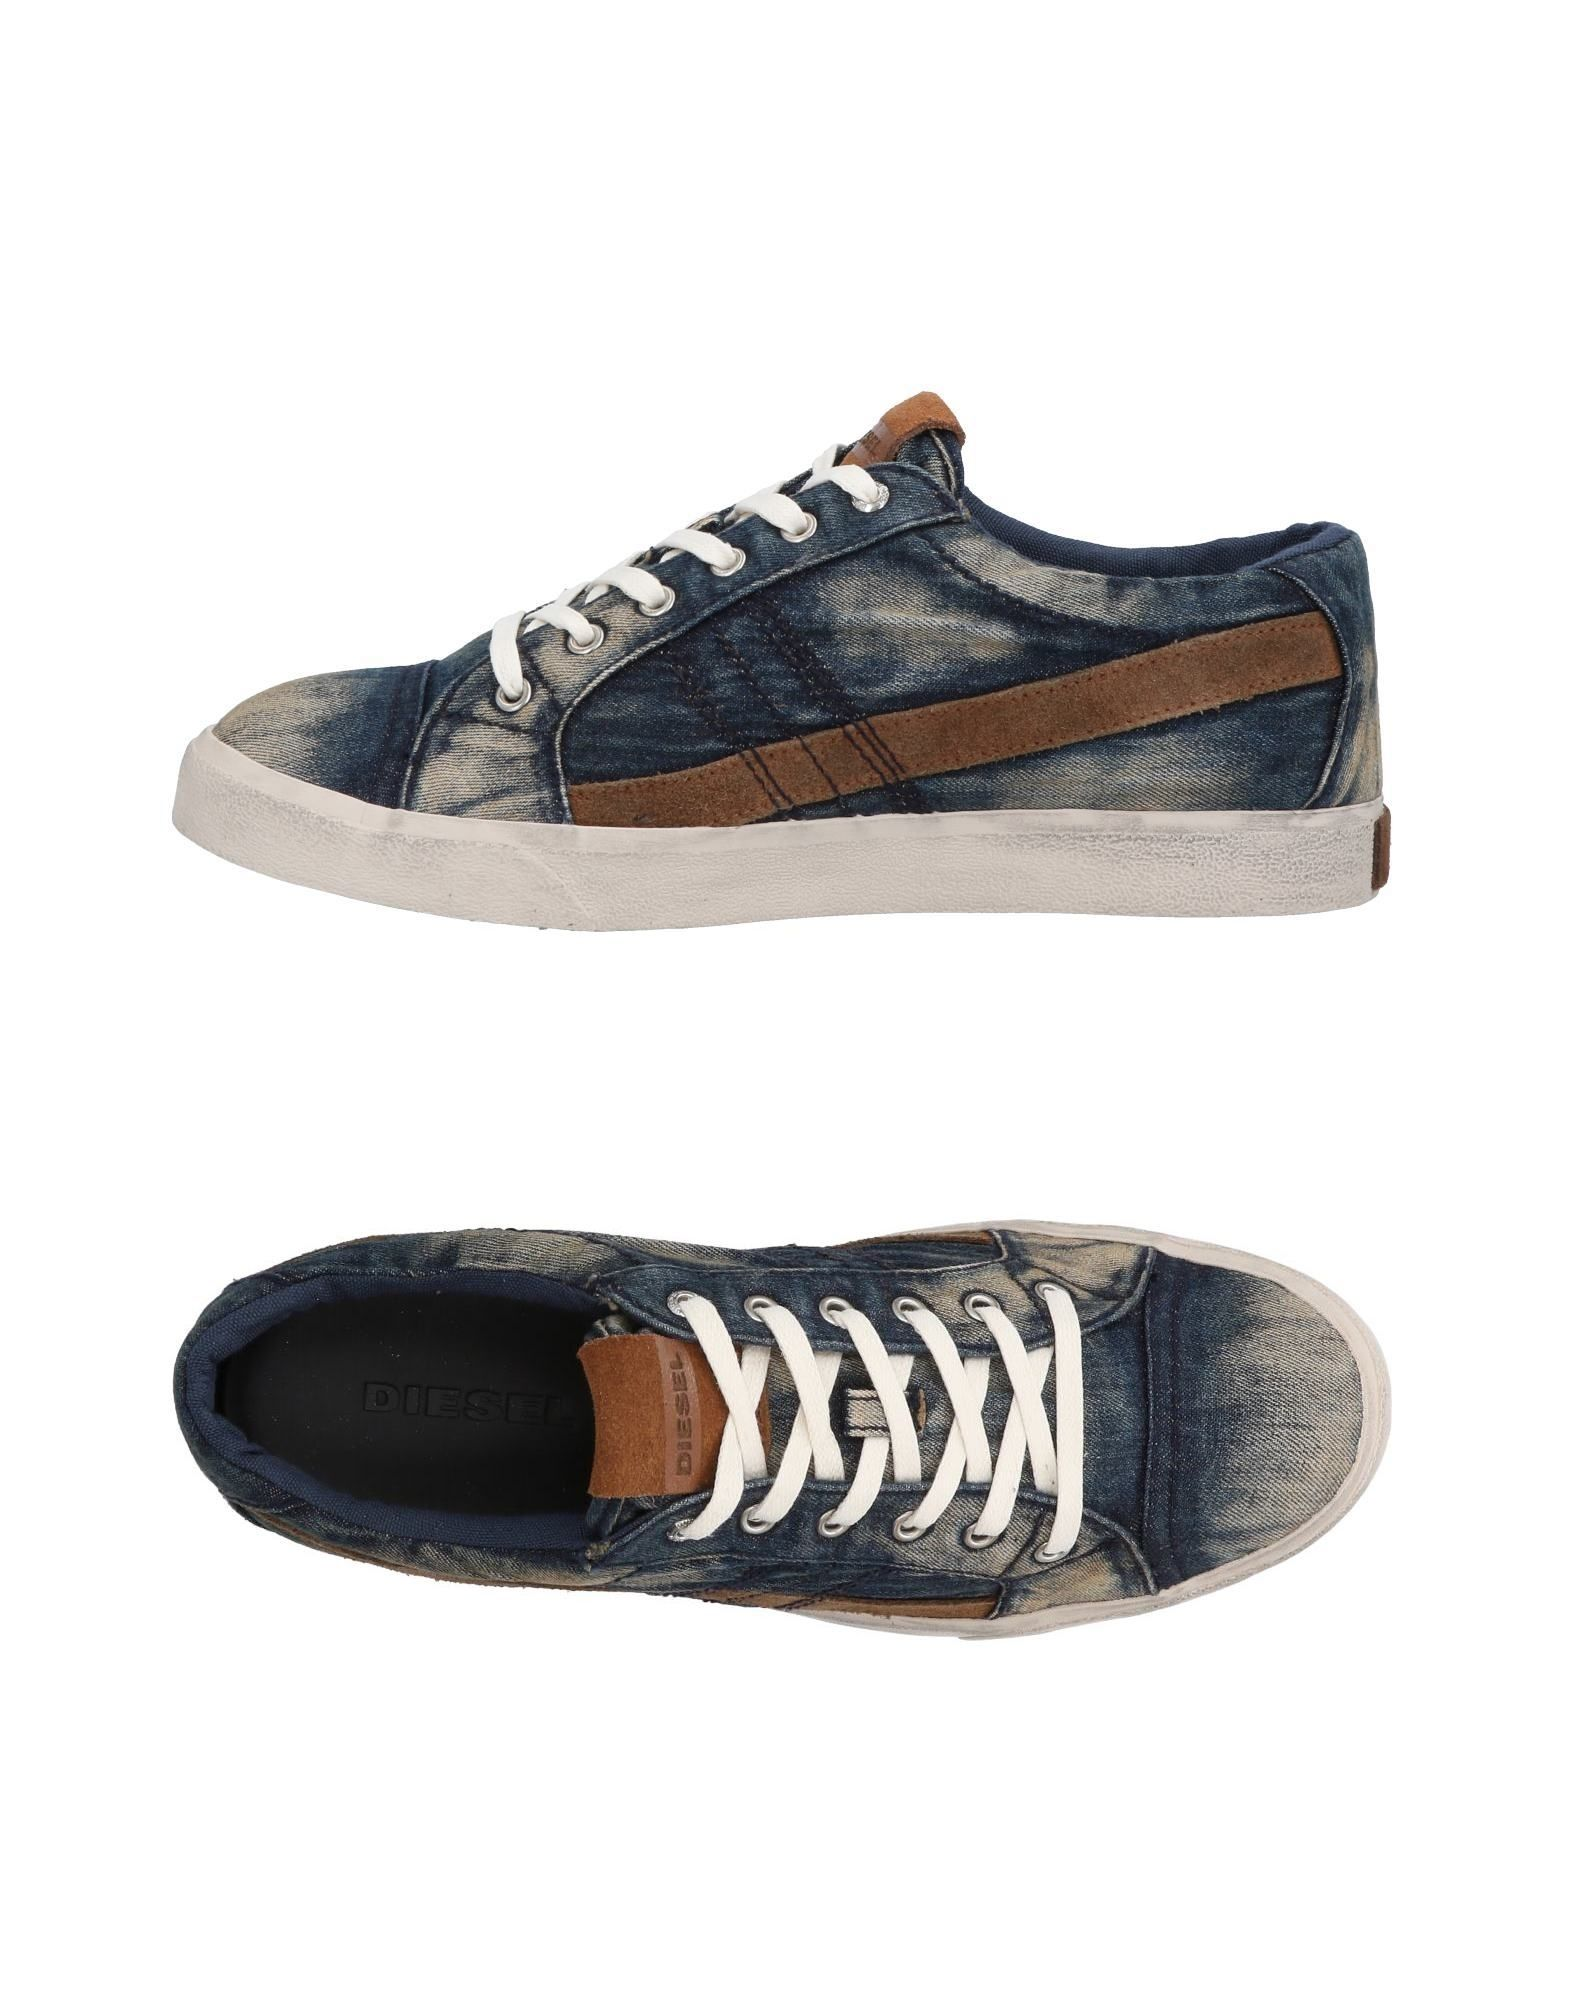 A buon mercato Sneakers Diesel Uomo - 11491289IS